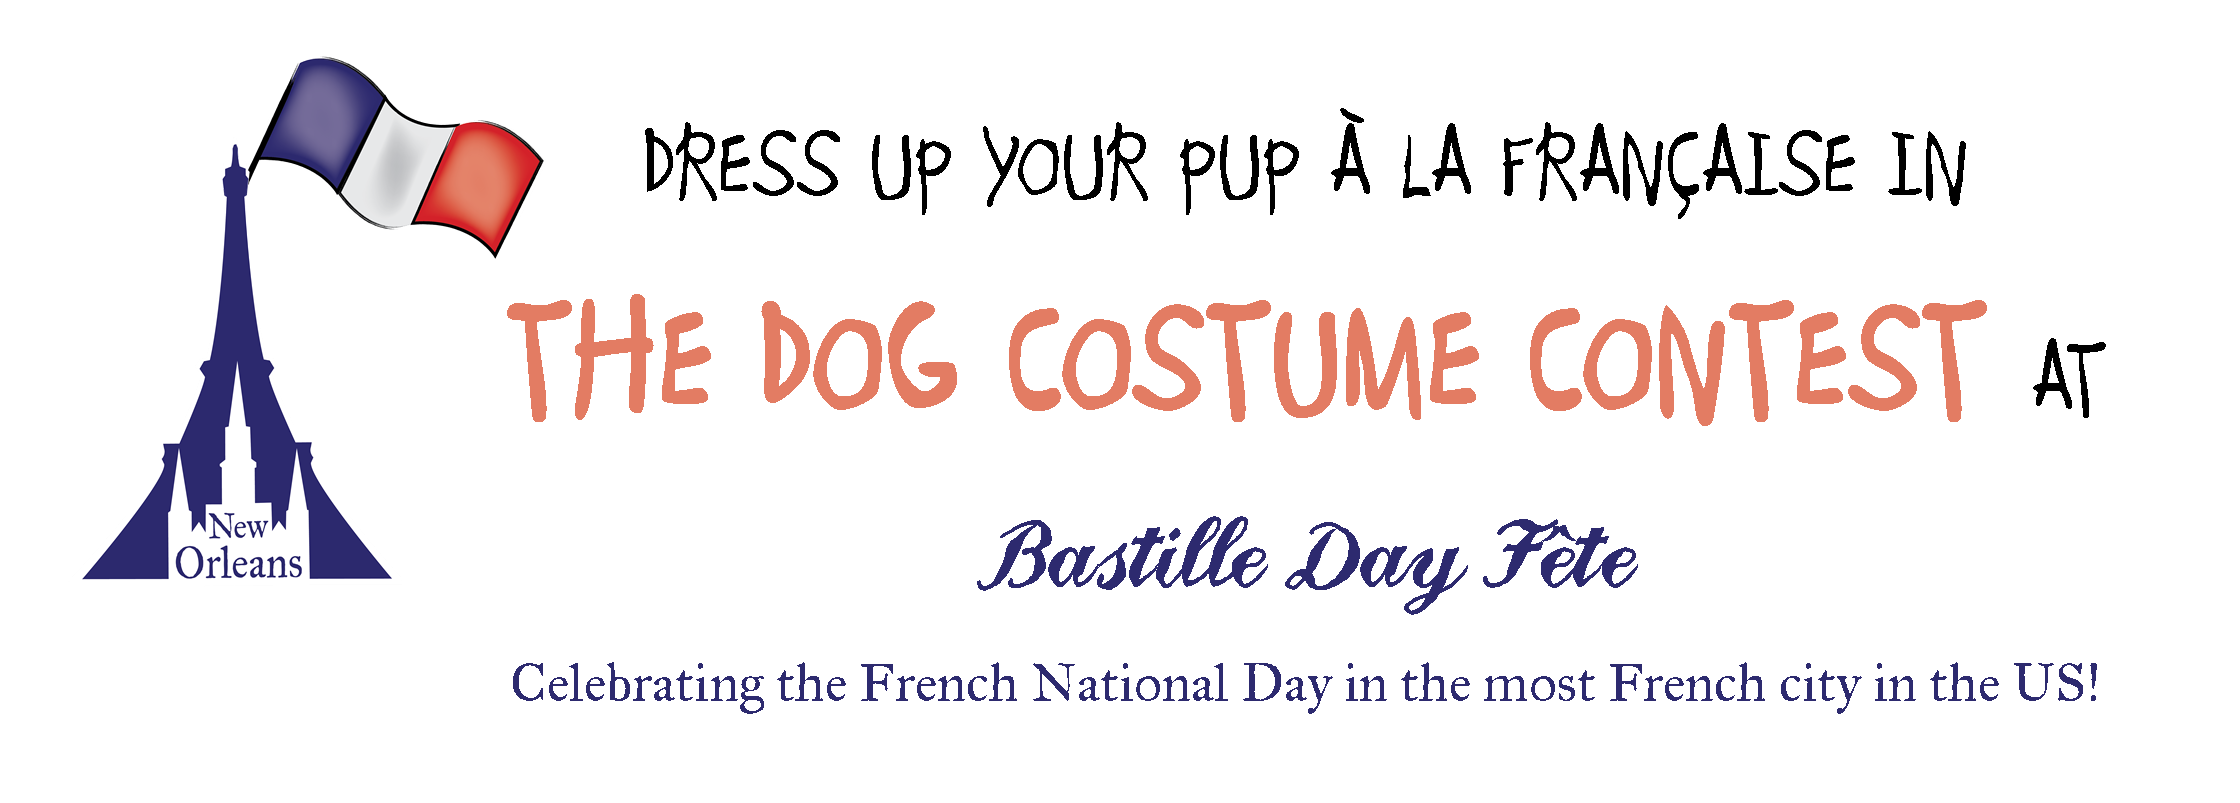 France clipart bastille day. Dog costume contest new